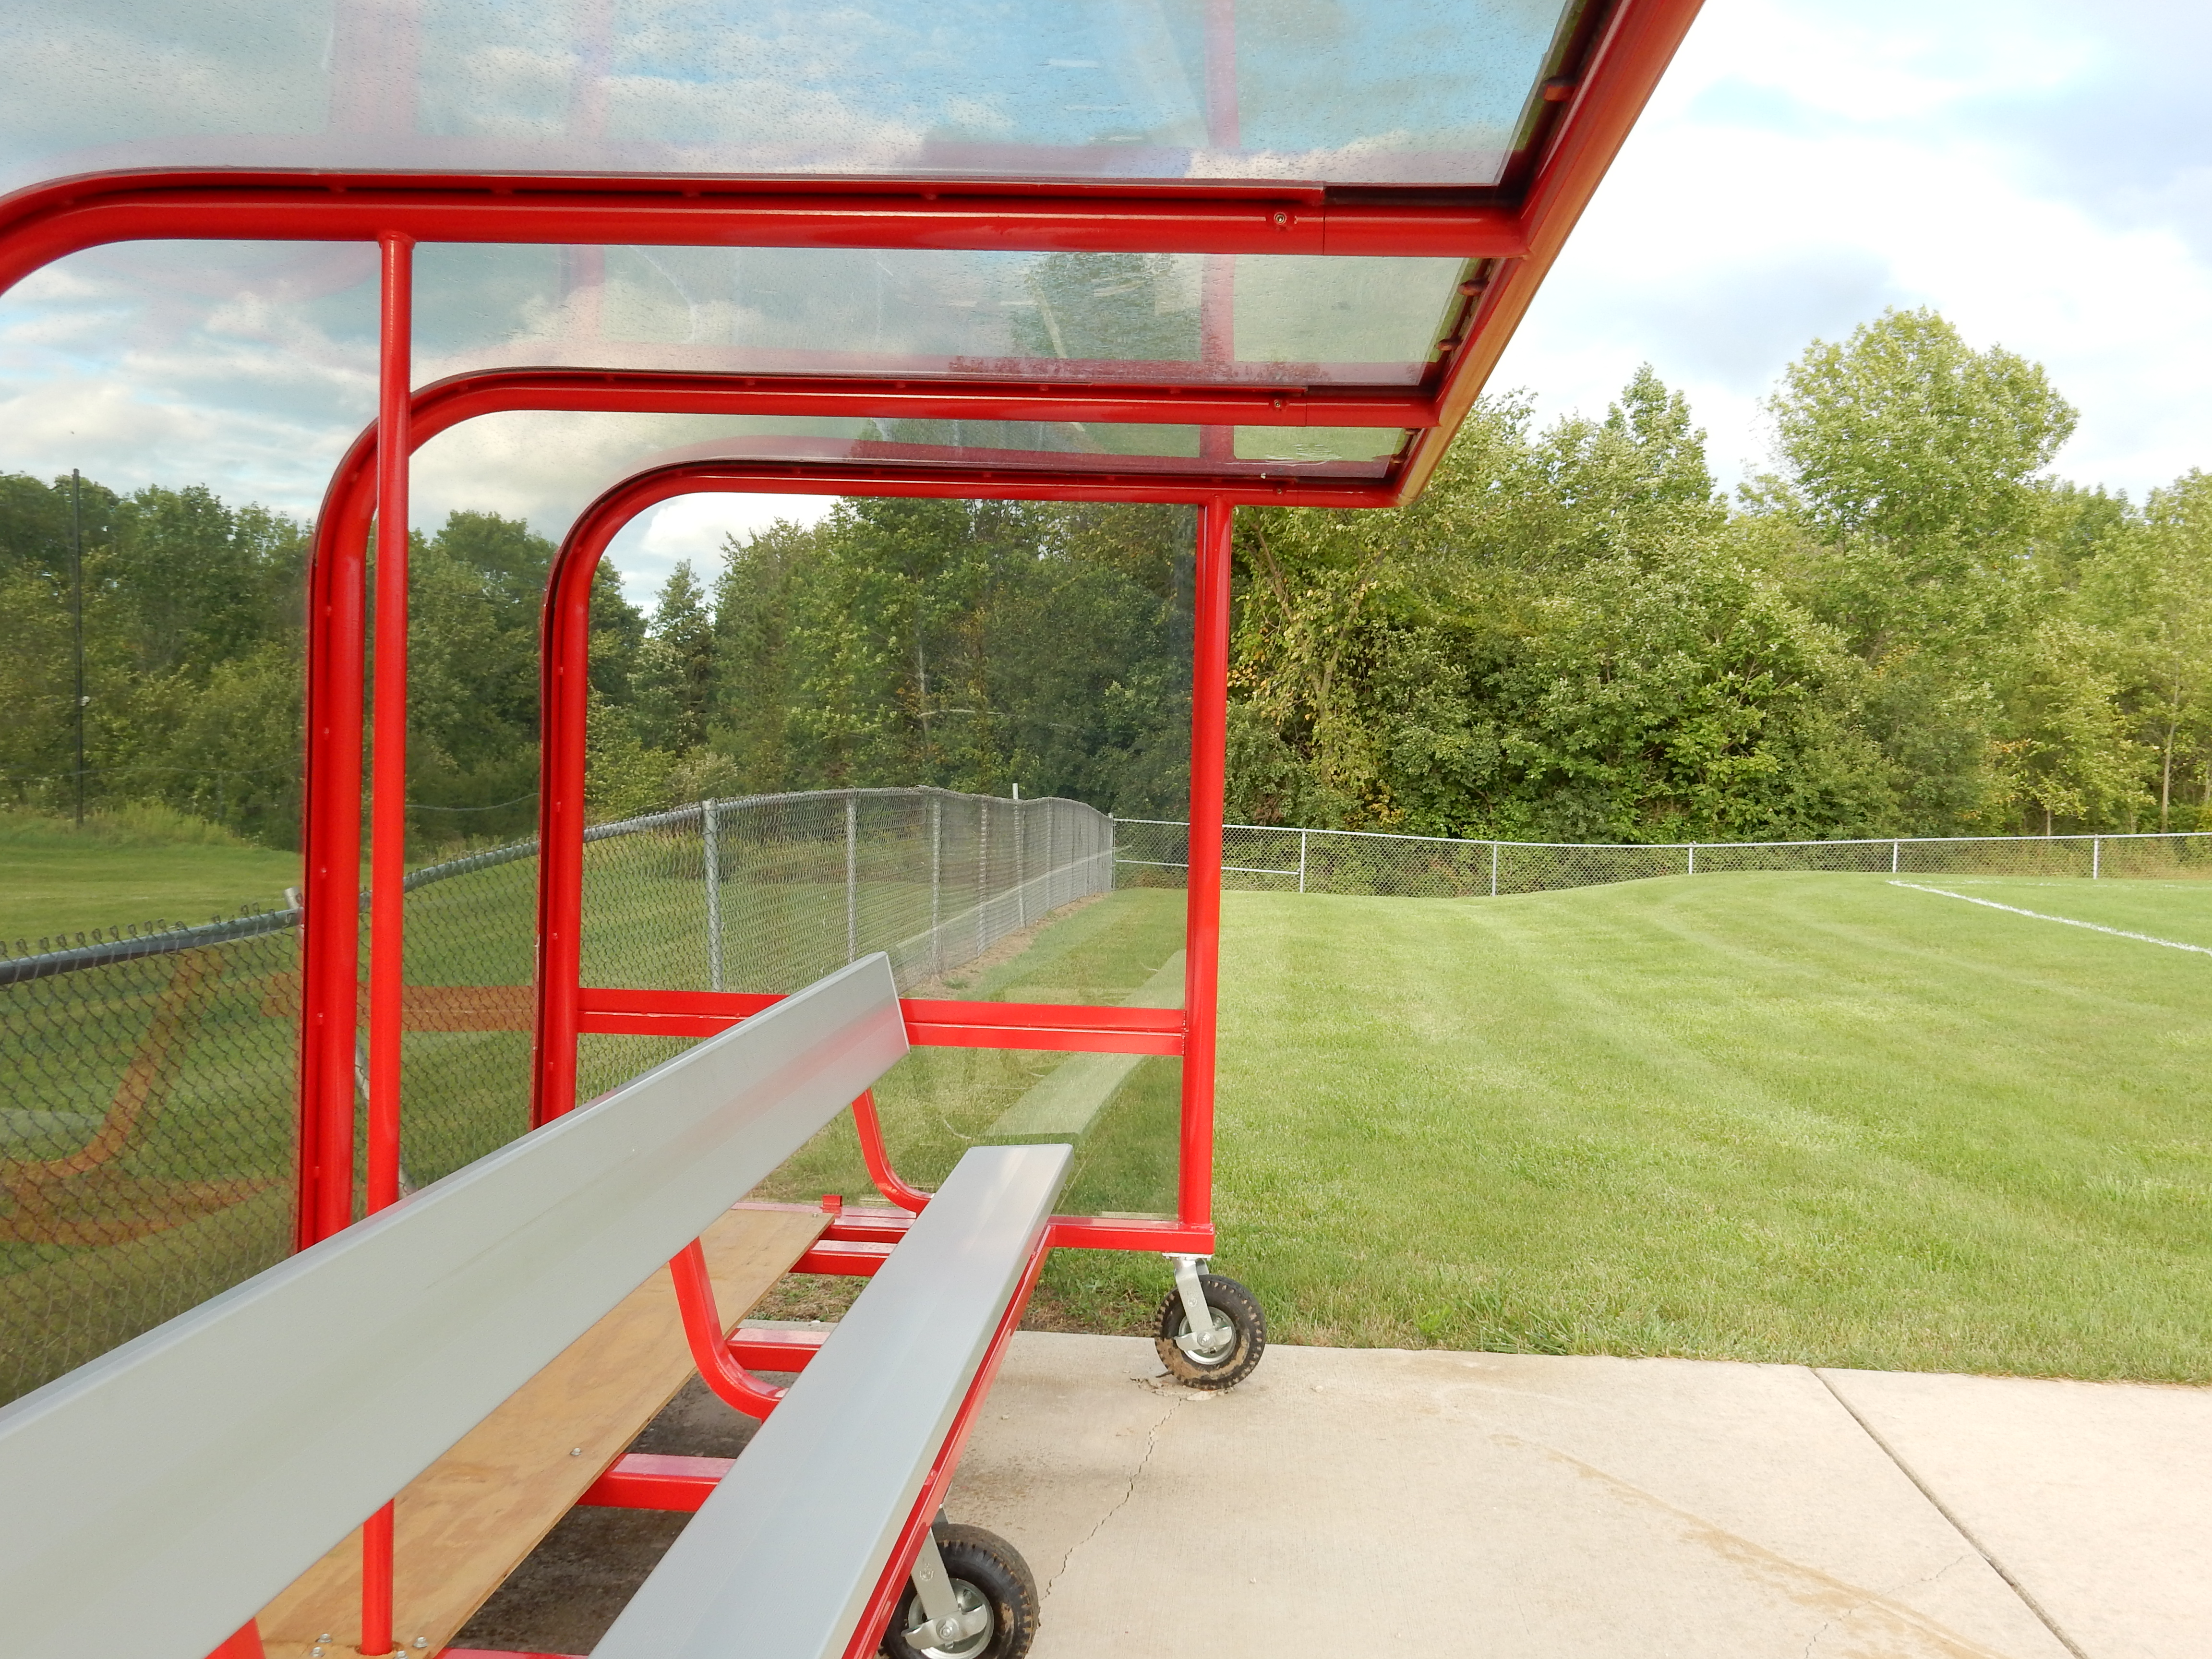 Model #PPS16PABSL. Box style soccer team shelter. Aluminum bench, red frame with wheels.